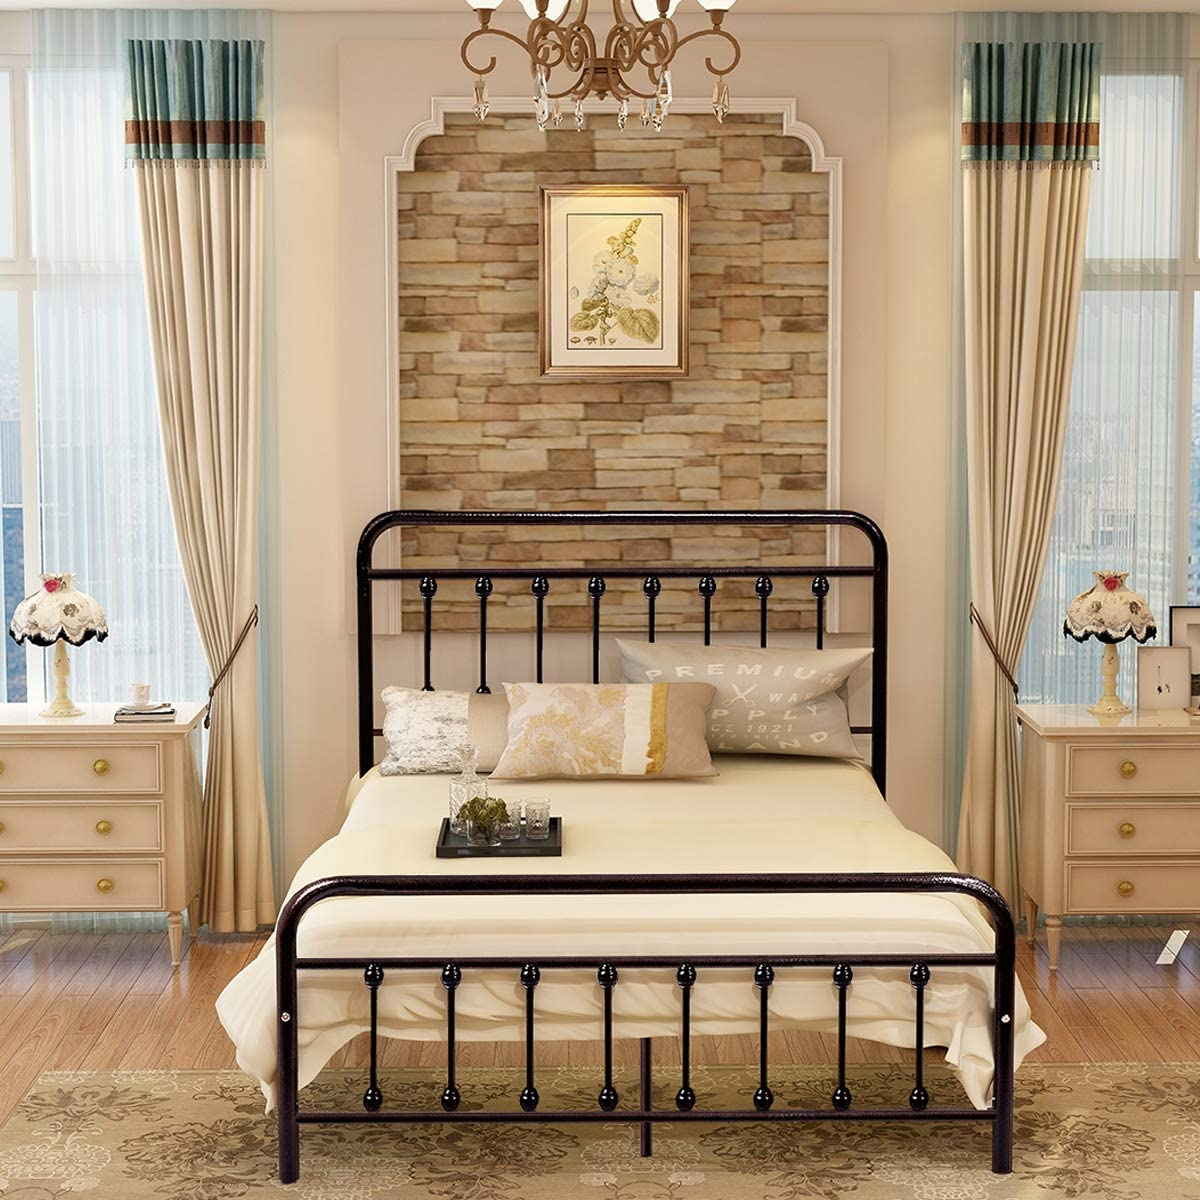 Dark Copper Metal Platform Bed Box Spring Replacement Foundation with Headboards Heavy Duty Steel Slats, Full